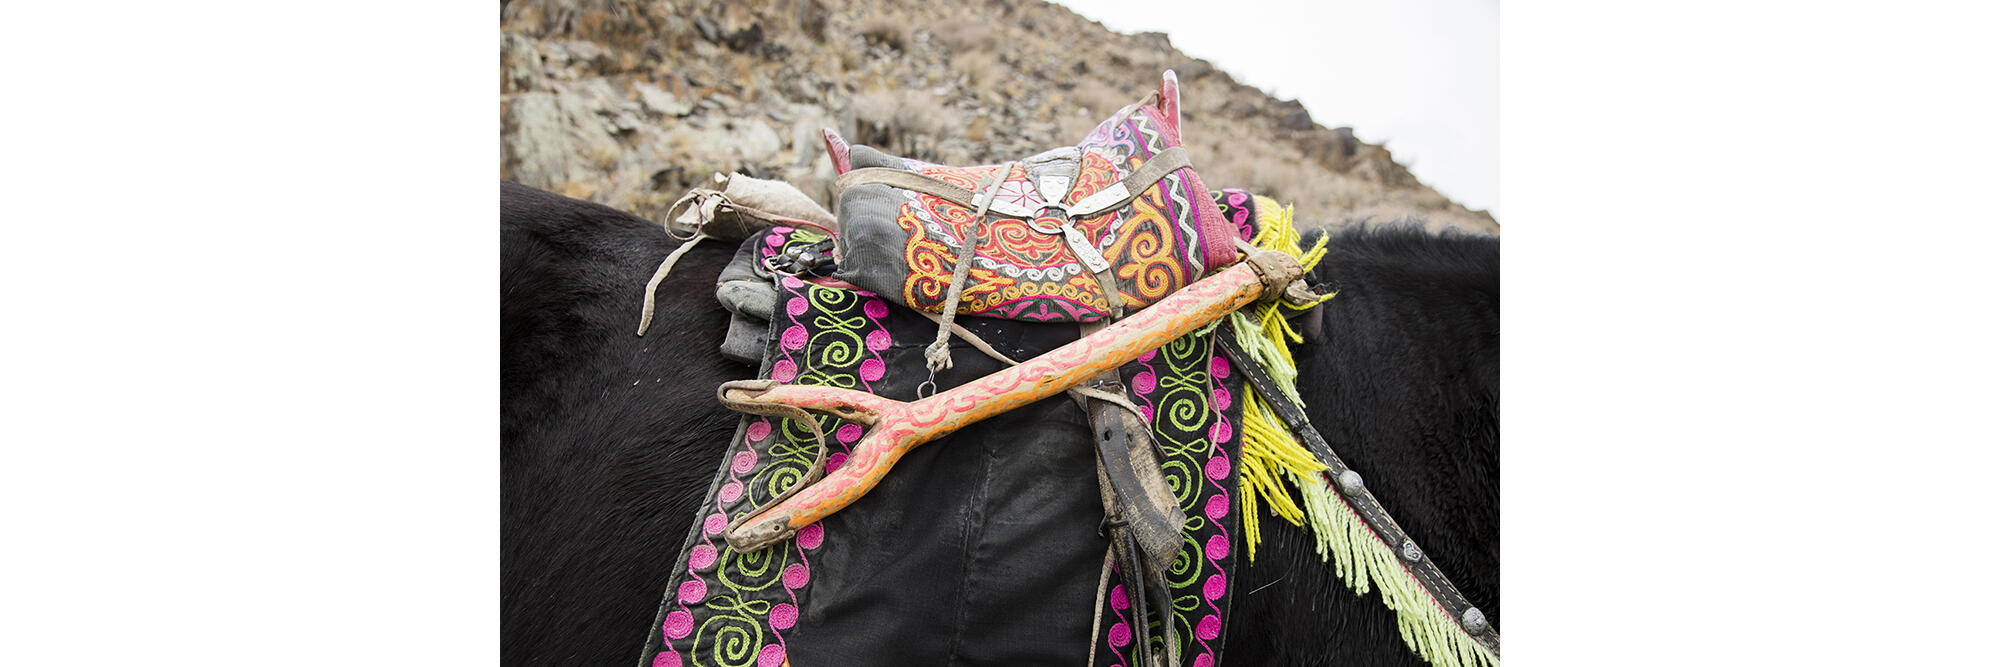 Itale's saddle is equipped with a baldak, a Y-shaped rest made from wood or bone that supports his arm so that he can hold his eagle while riding on horseback. Cedric Angeles/Intersection Photos